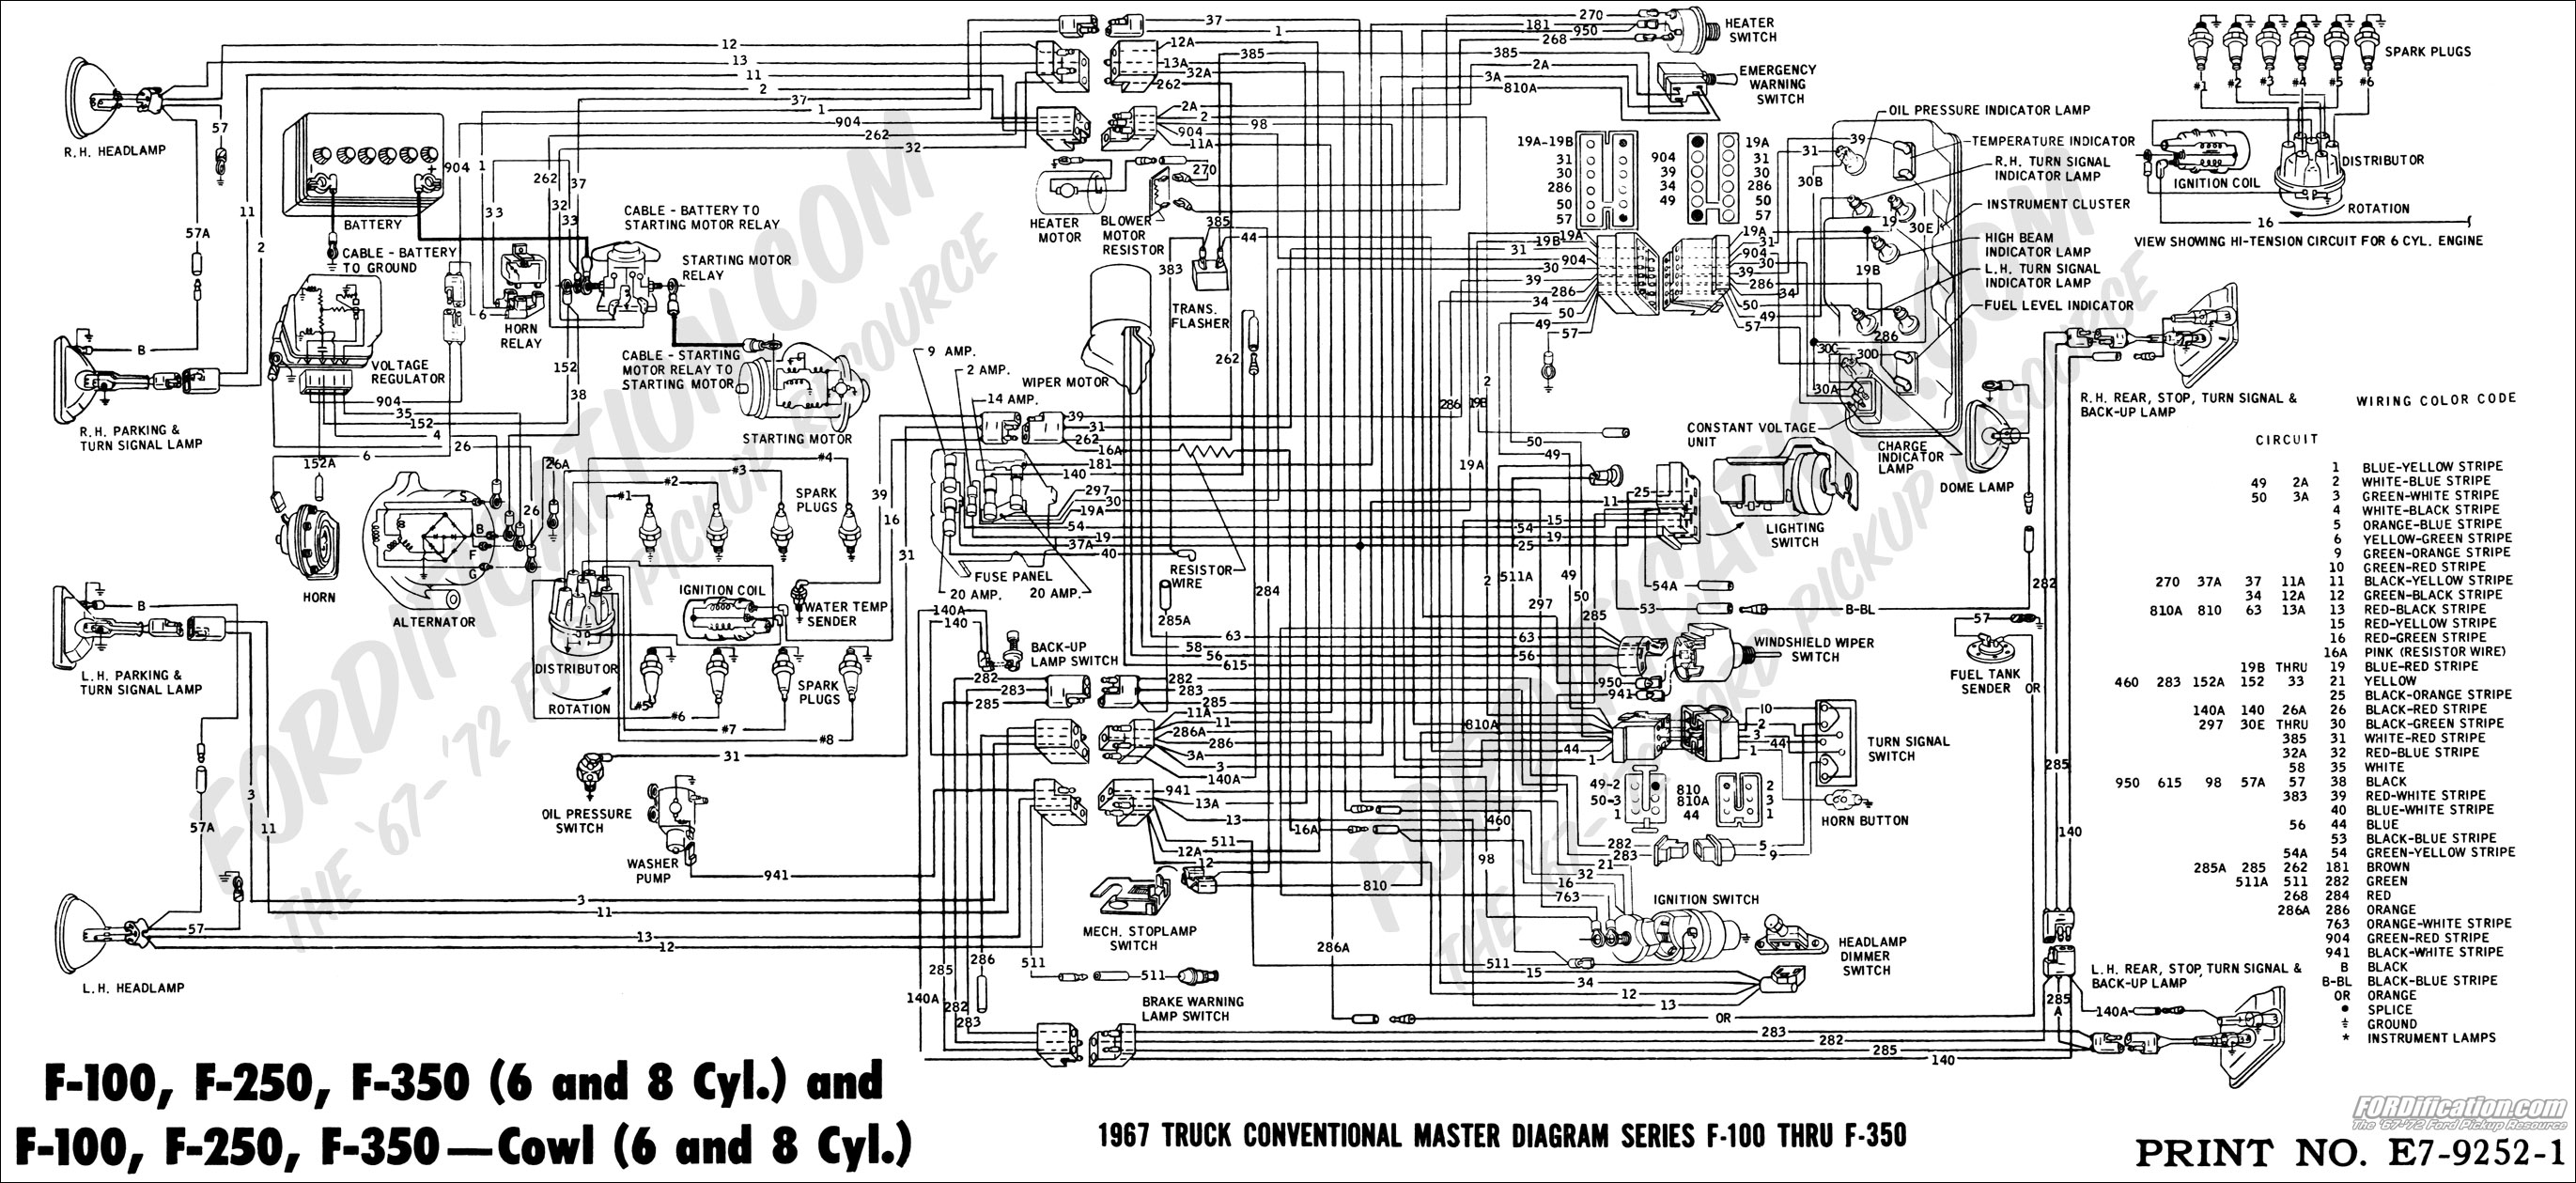 67masterdiagram 1998 ford f150 wiring diagram 1998 jeep grand cherokee wiring 1984 ford f150 wiring harness at bakdesigns.co